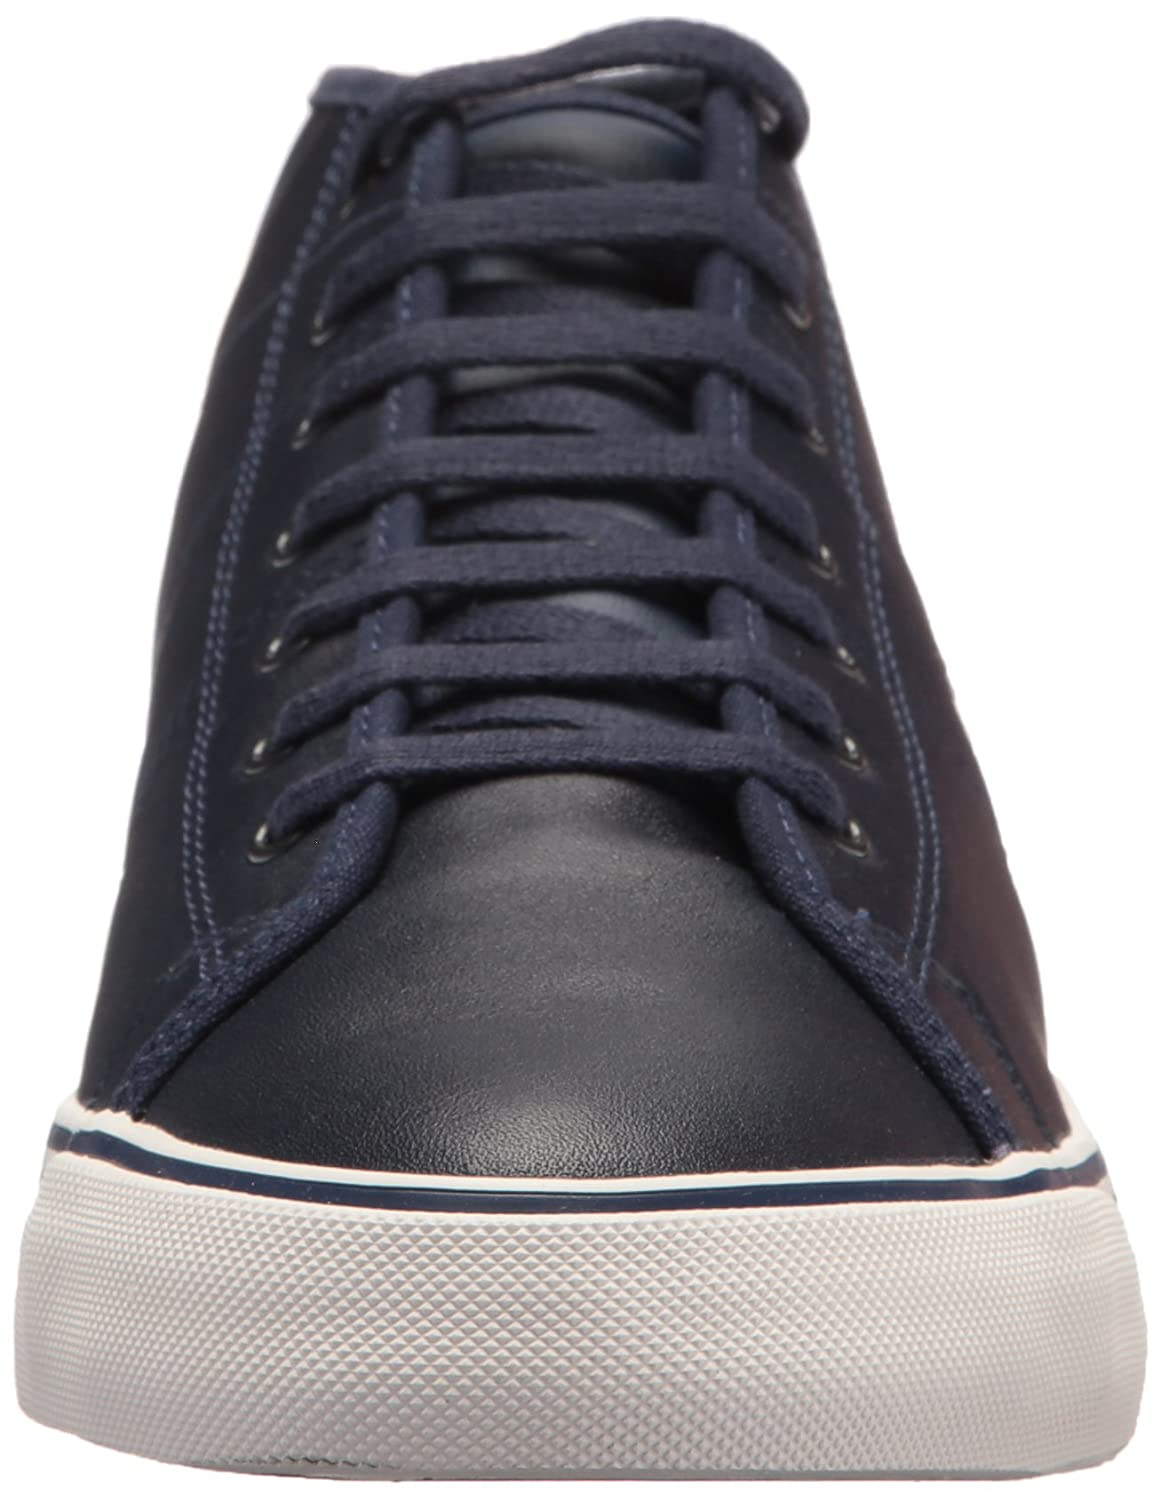 Fred Perry Haydon Mid Leather Sneaker B06VVR3236 9.5 D UK (10.5 US)|Carbon Blue